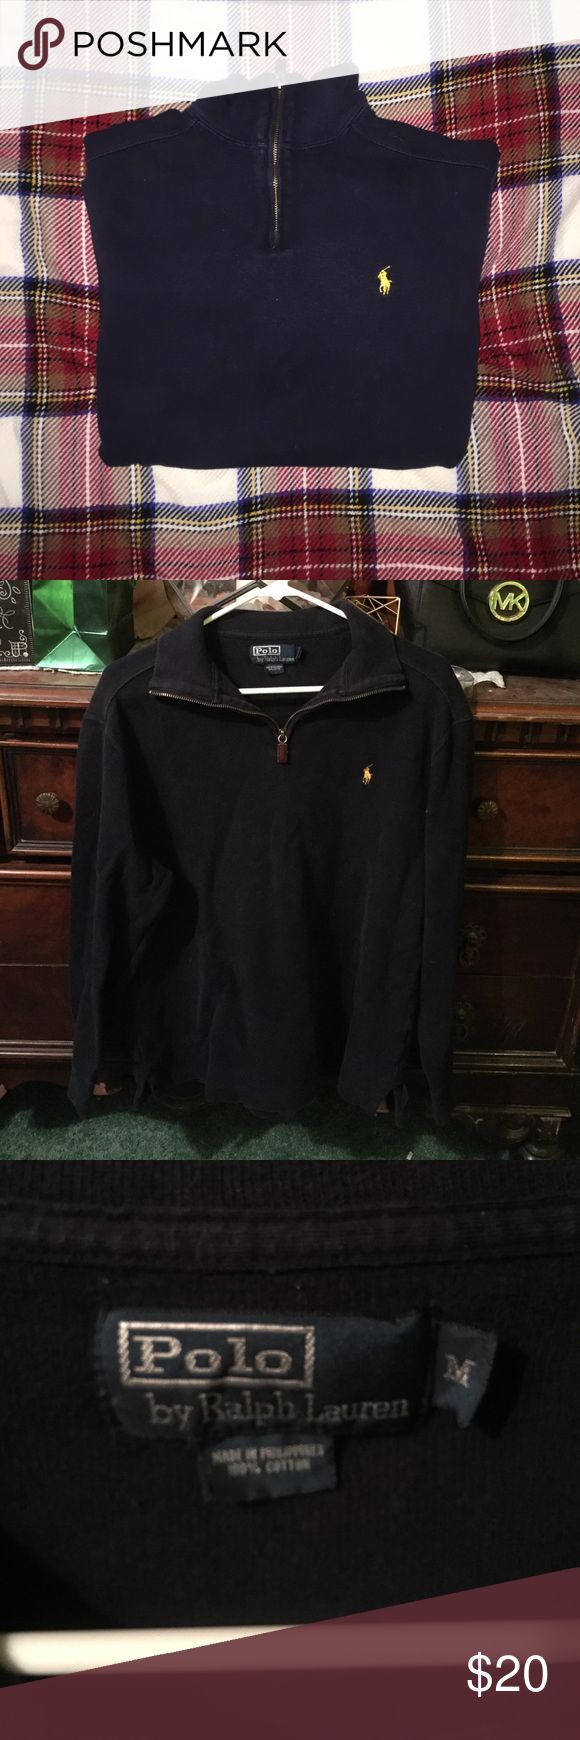 POLO PULLOVER Great condition no stains or lose strands size medium Polo by Ralph Lauren Sweaters Zip Up